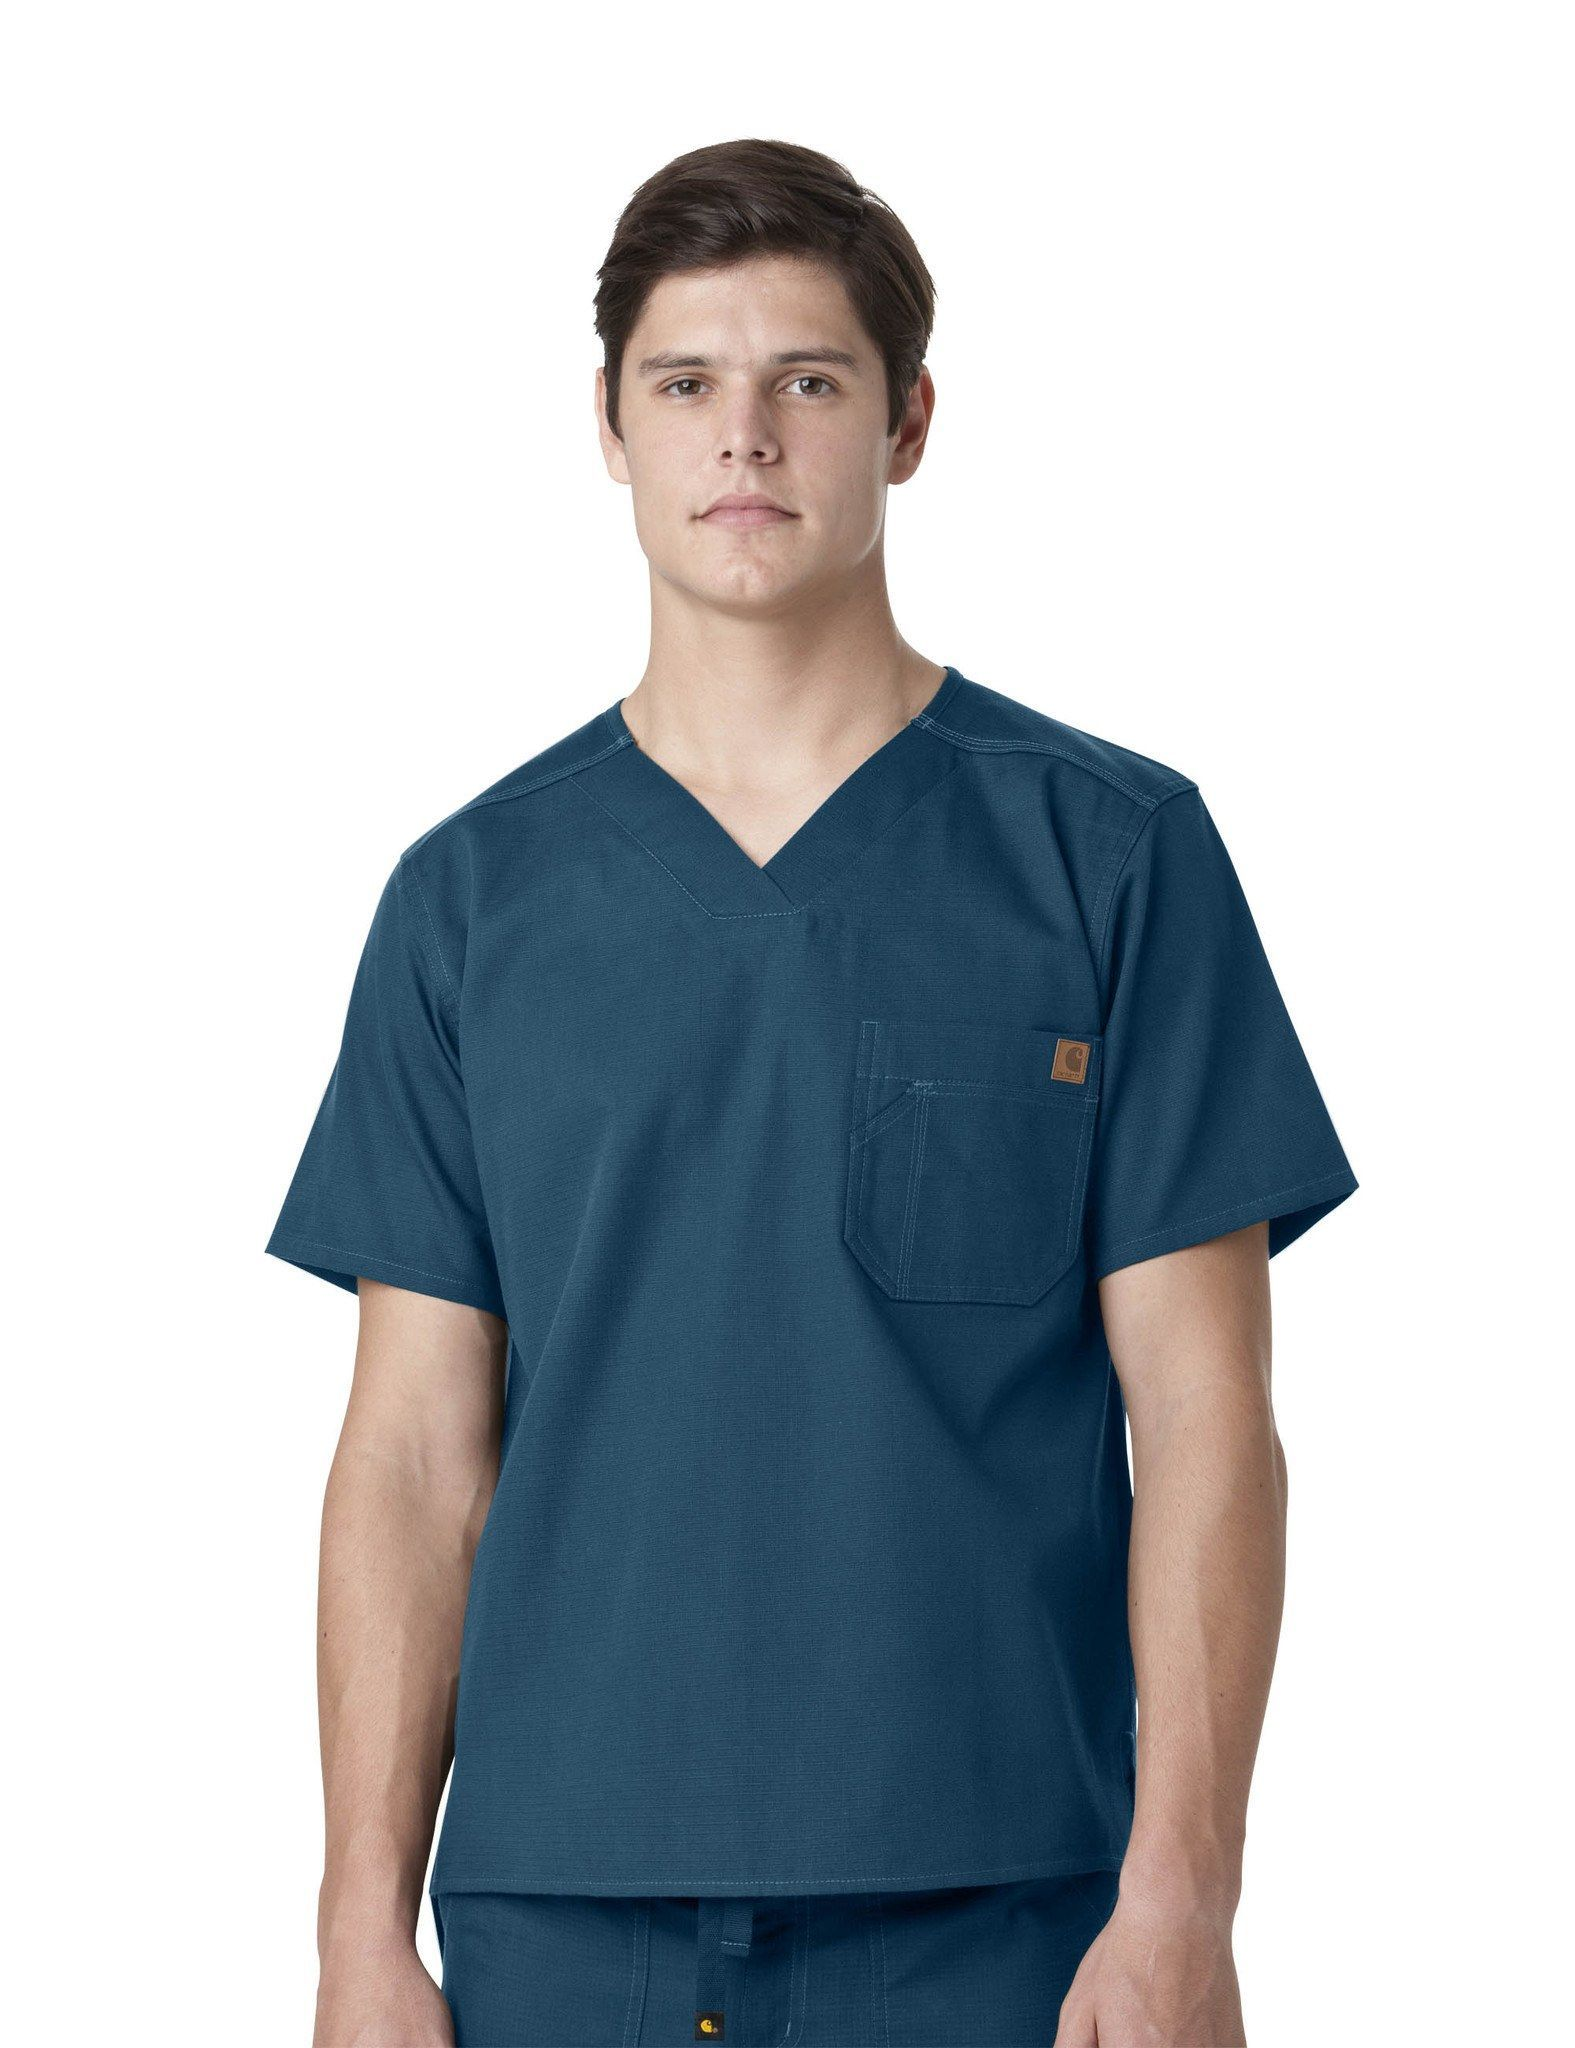 d2721a681eb Carhartt Men's Ripstop Solid Utility Top | Products | Mens tops ...